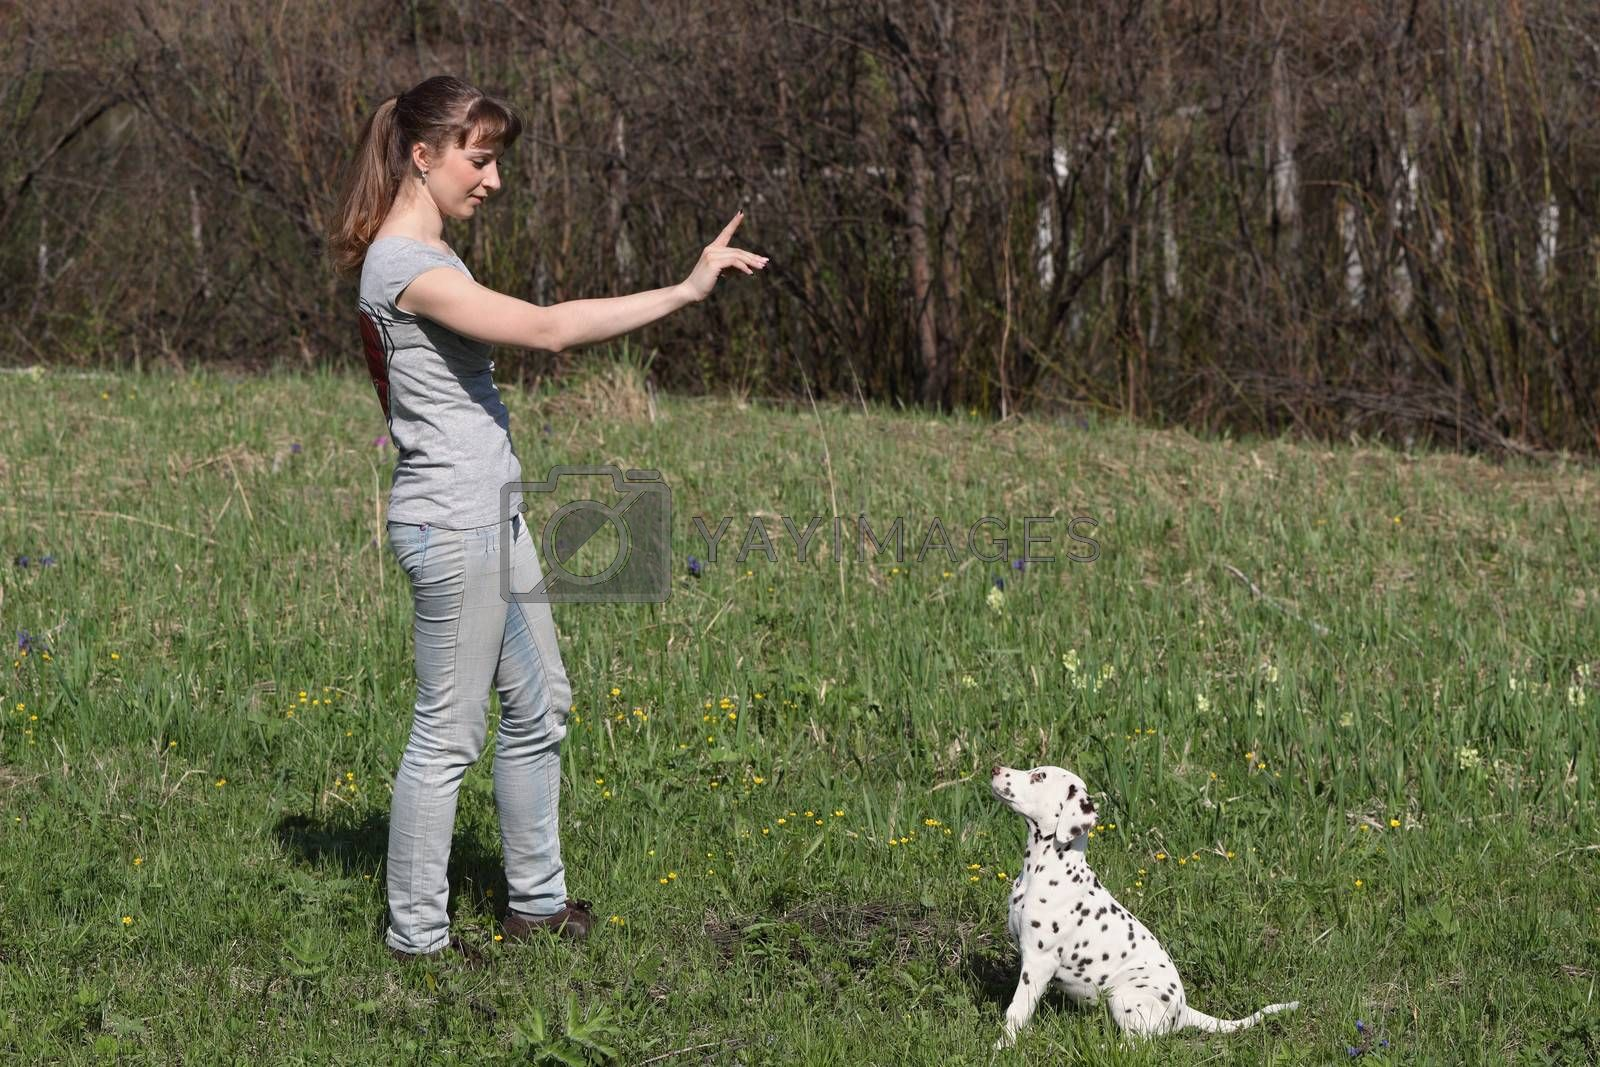 Girl training a little dalmatian puppy dog